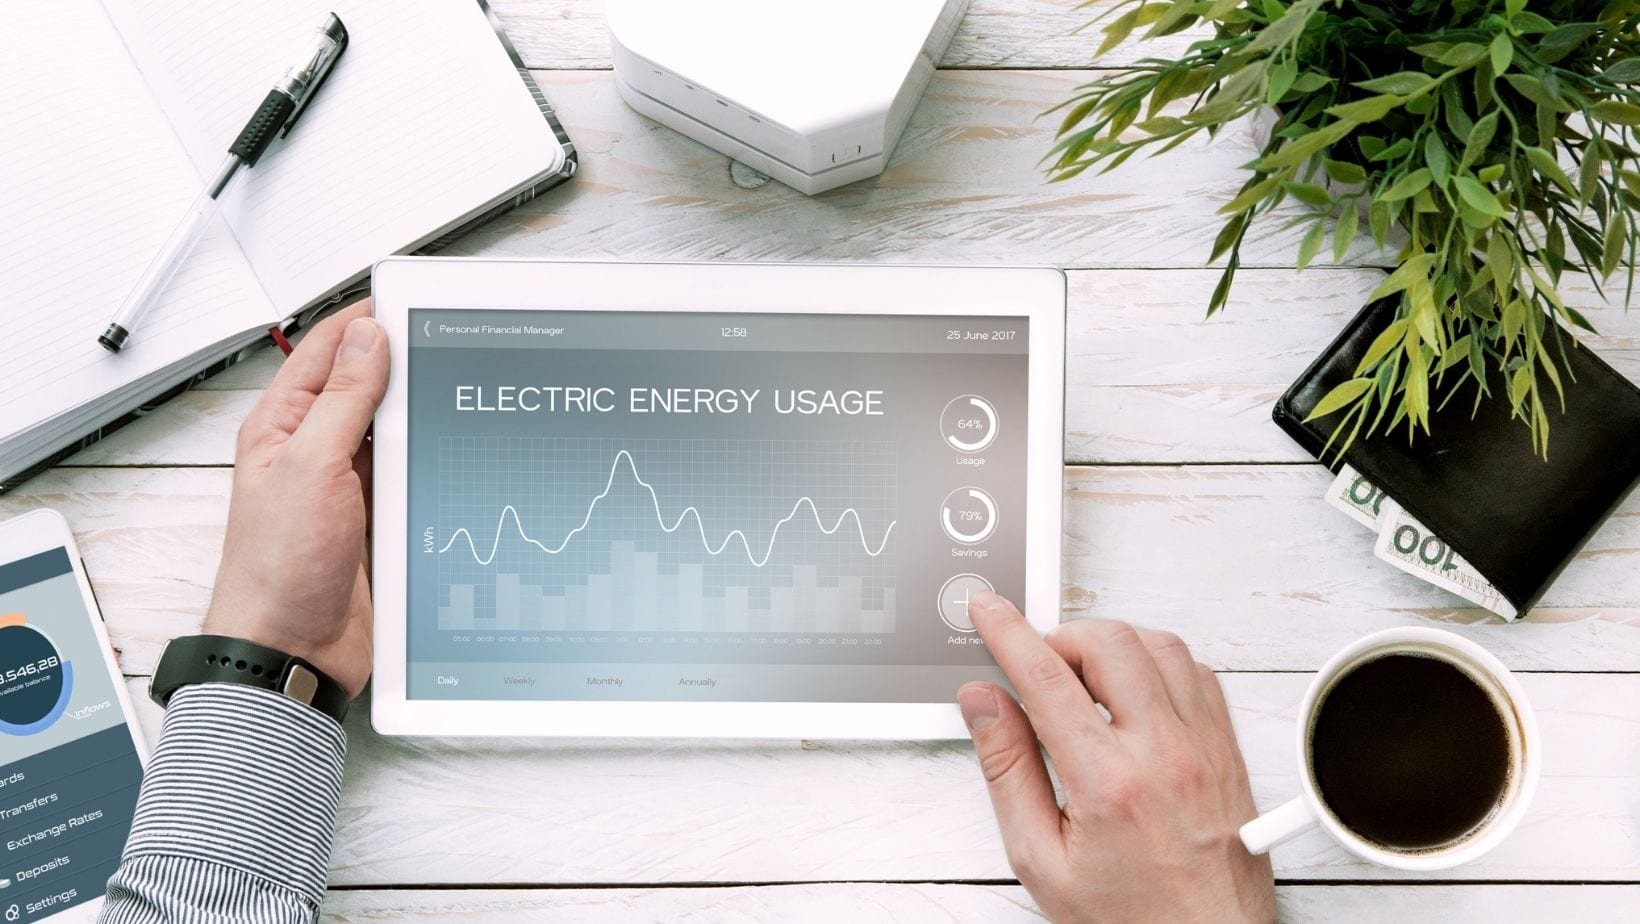 How to reduce energy usage?